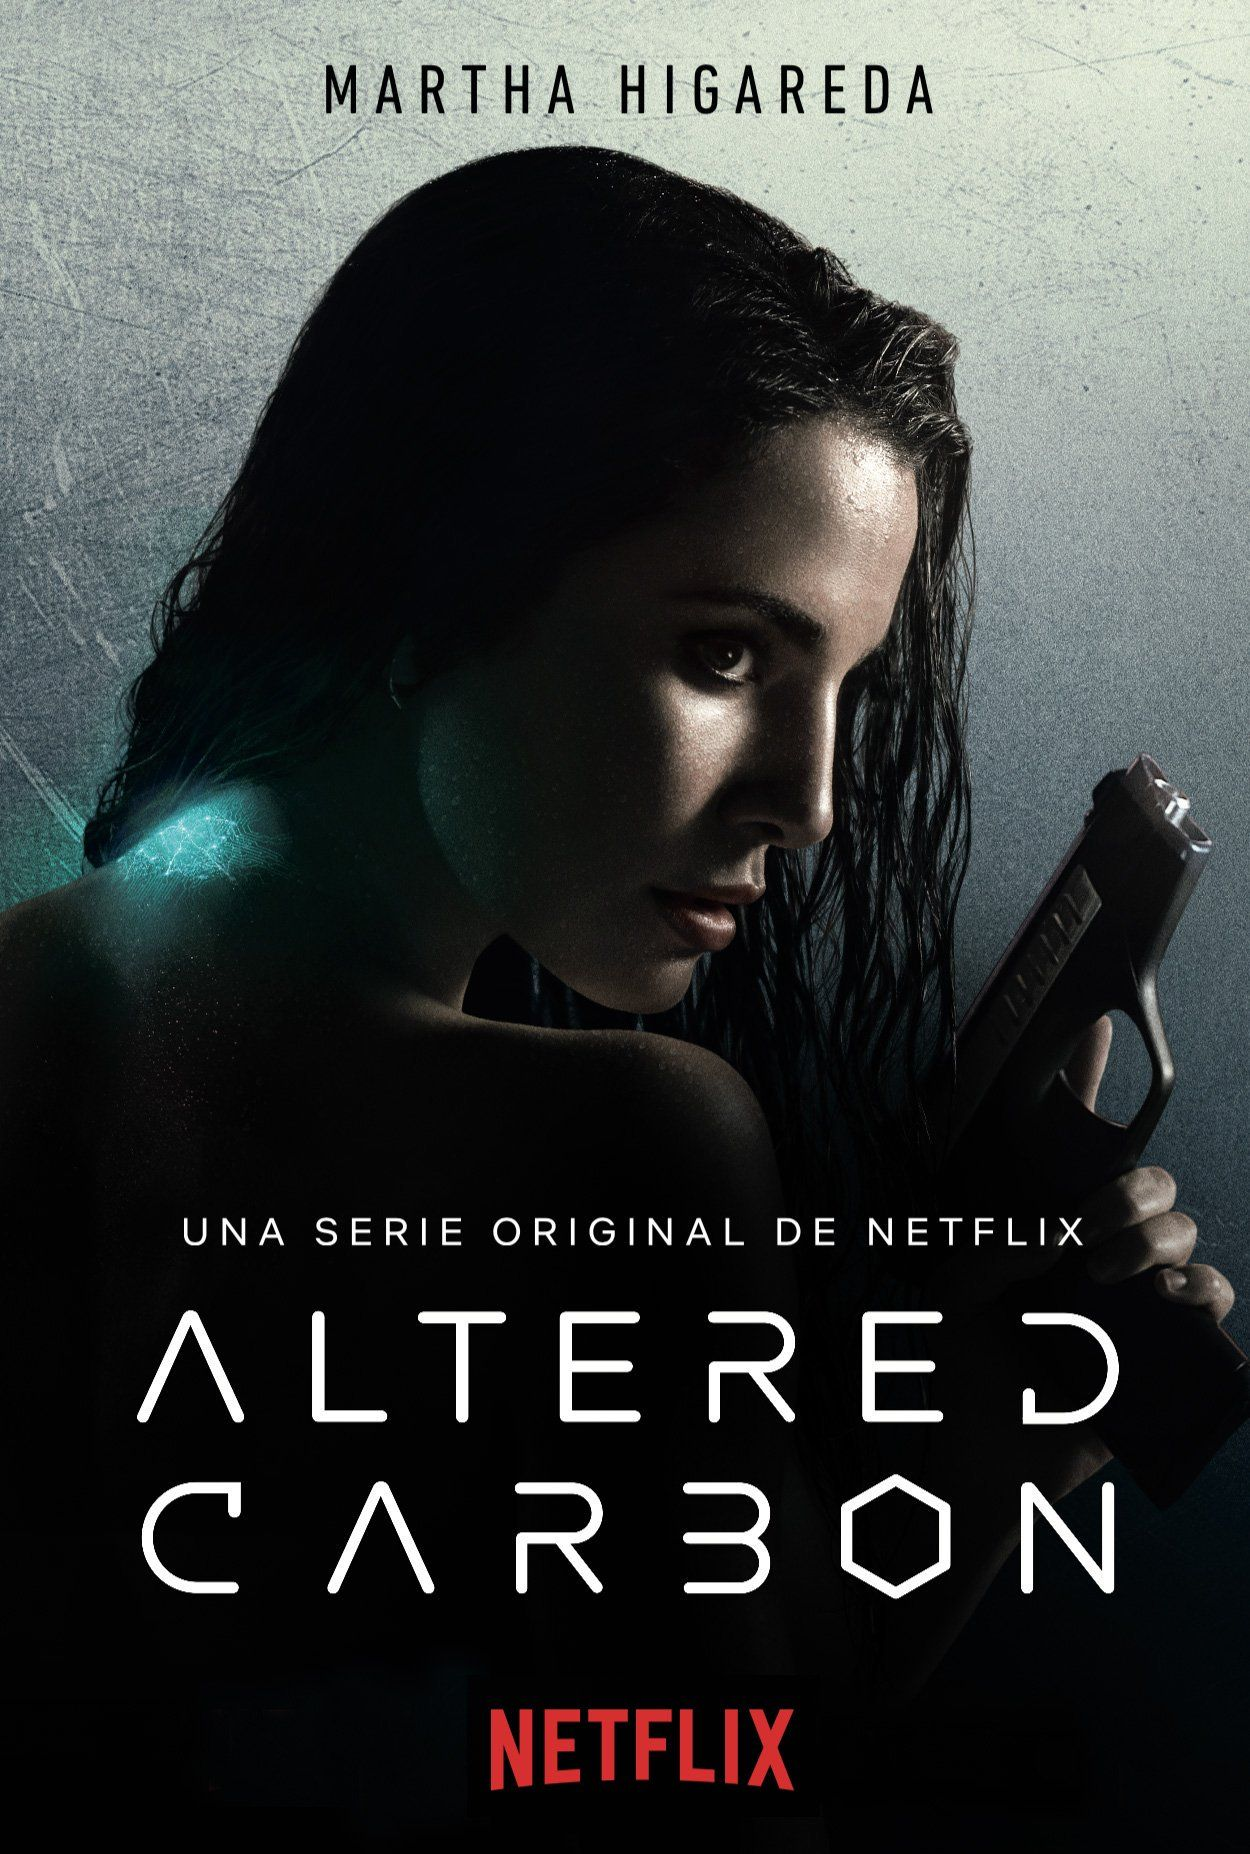 Netflix Altered Carbon With Images Altered Carbon Tv